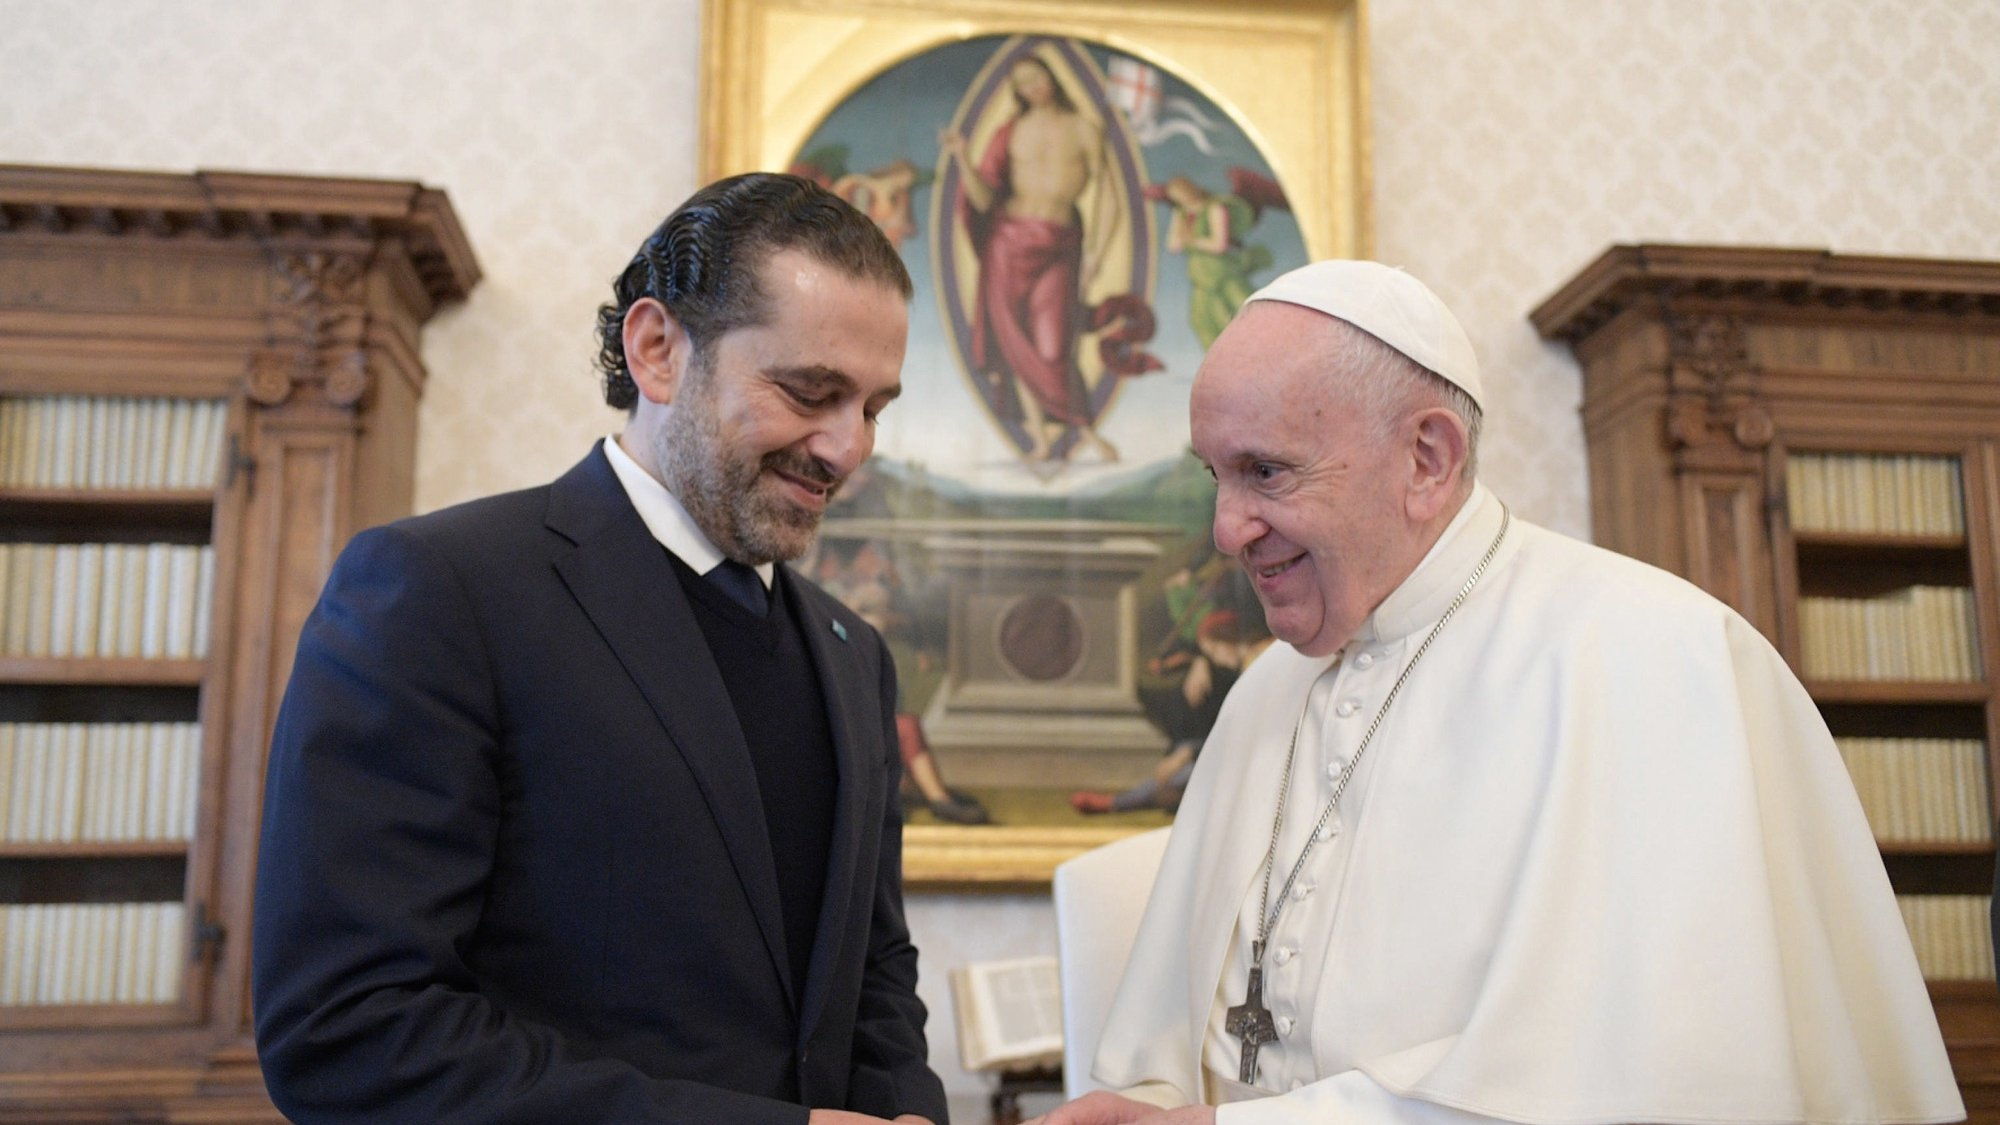 epa09152267 A handout picture provided by the Vatican Media shows Pope Francis receiving the Prime Minister designate of Lebanon, Saad Hariri (L), during a private audience at the Vatican, 22 April 2021.  EPA/VATICAN MEDIA HANDOUT  HANDOUT EDITORIAL USE ONLY/NO SALES